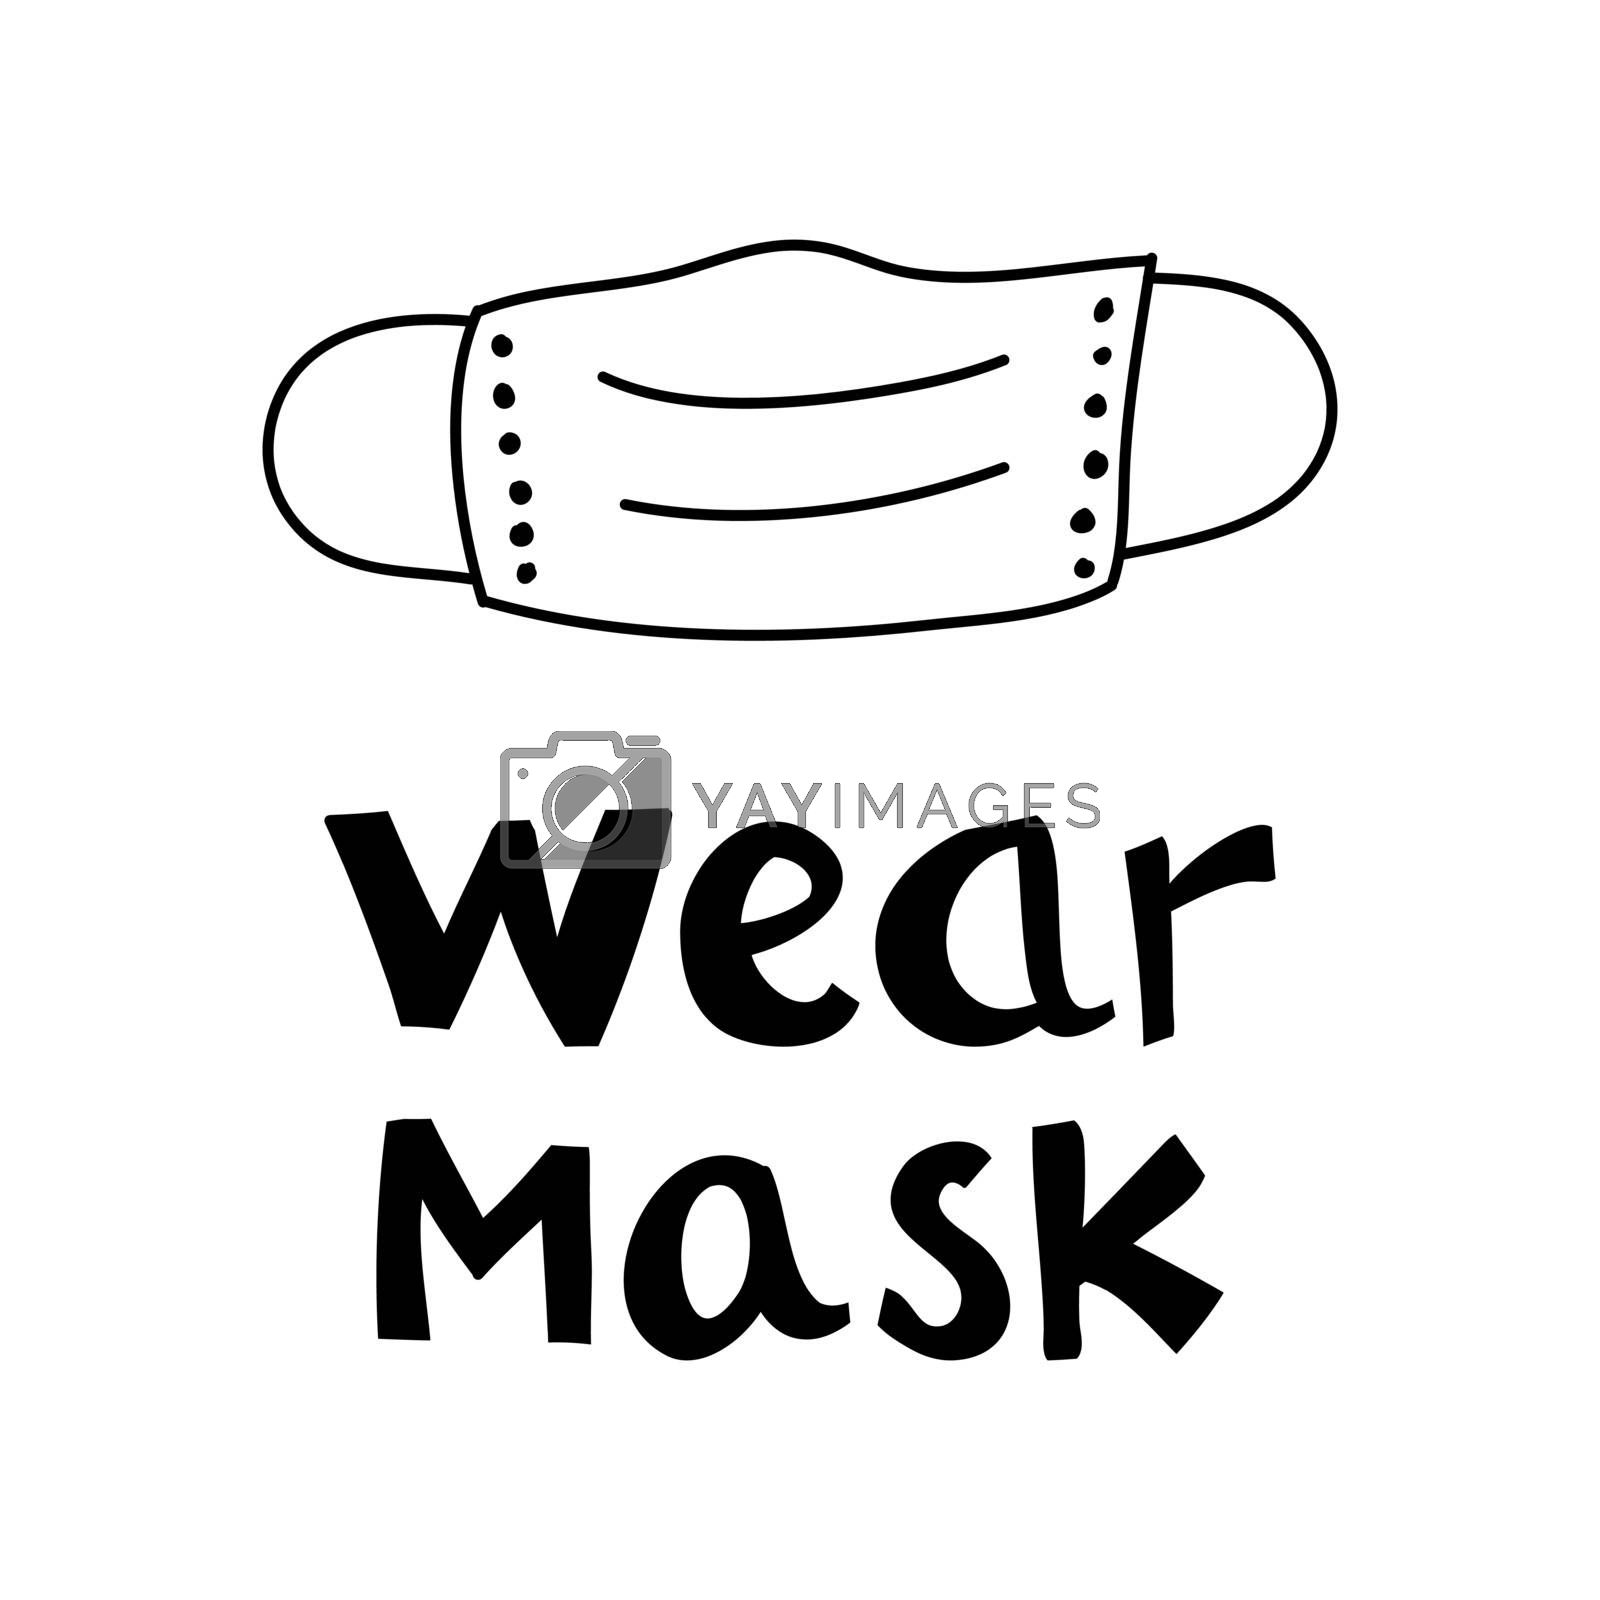 Wear mask lettering with doodle element. Motivational quote. Cute hand drawn calligraphy. Isolated on white. Vector stock illustration.